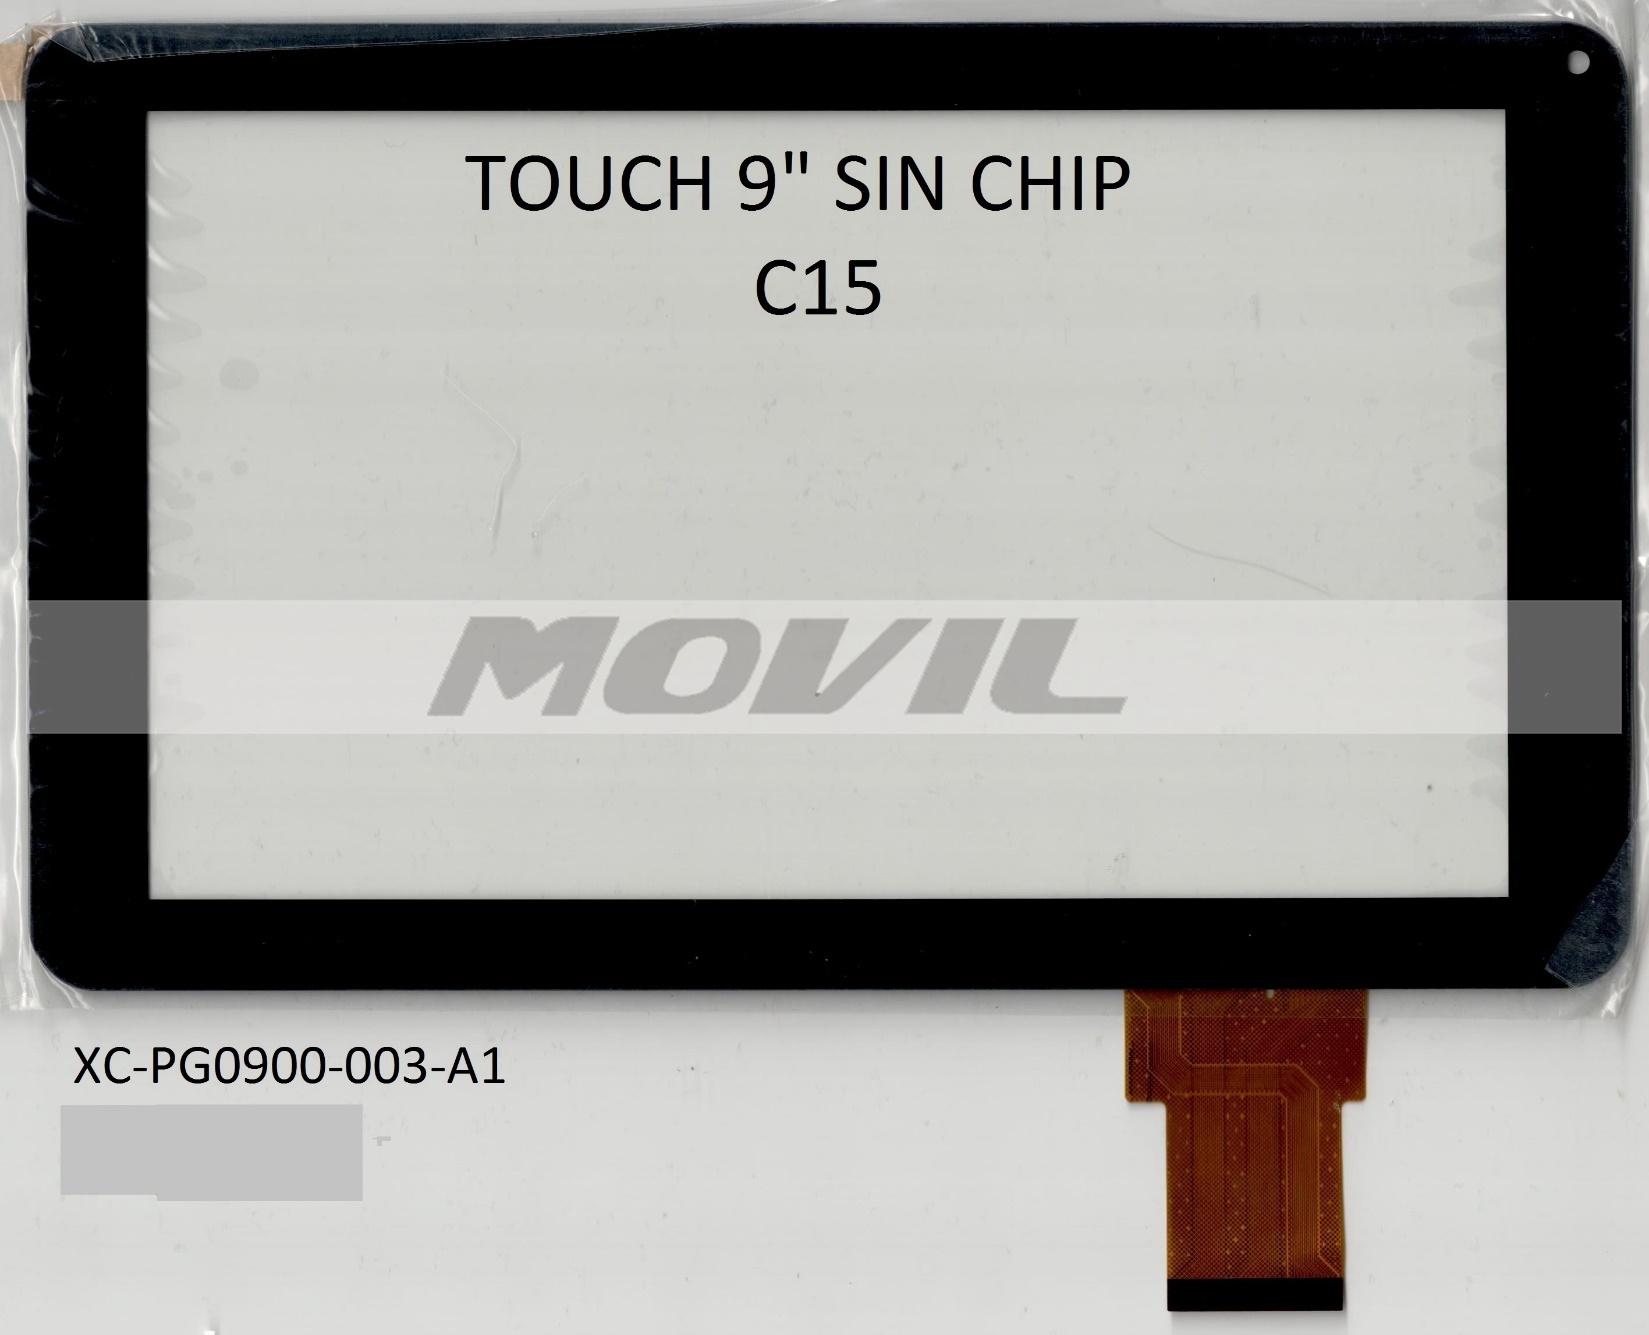 Touch tactil para tablet flex 9 inch SIN CHIP C15 XC-PG0900-003-A1